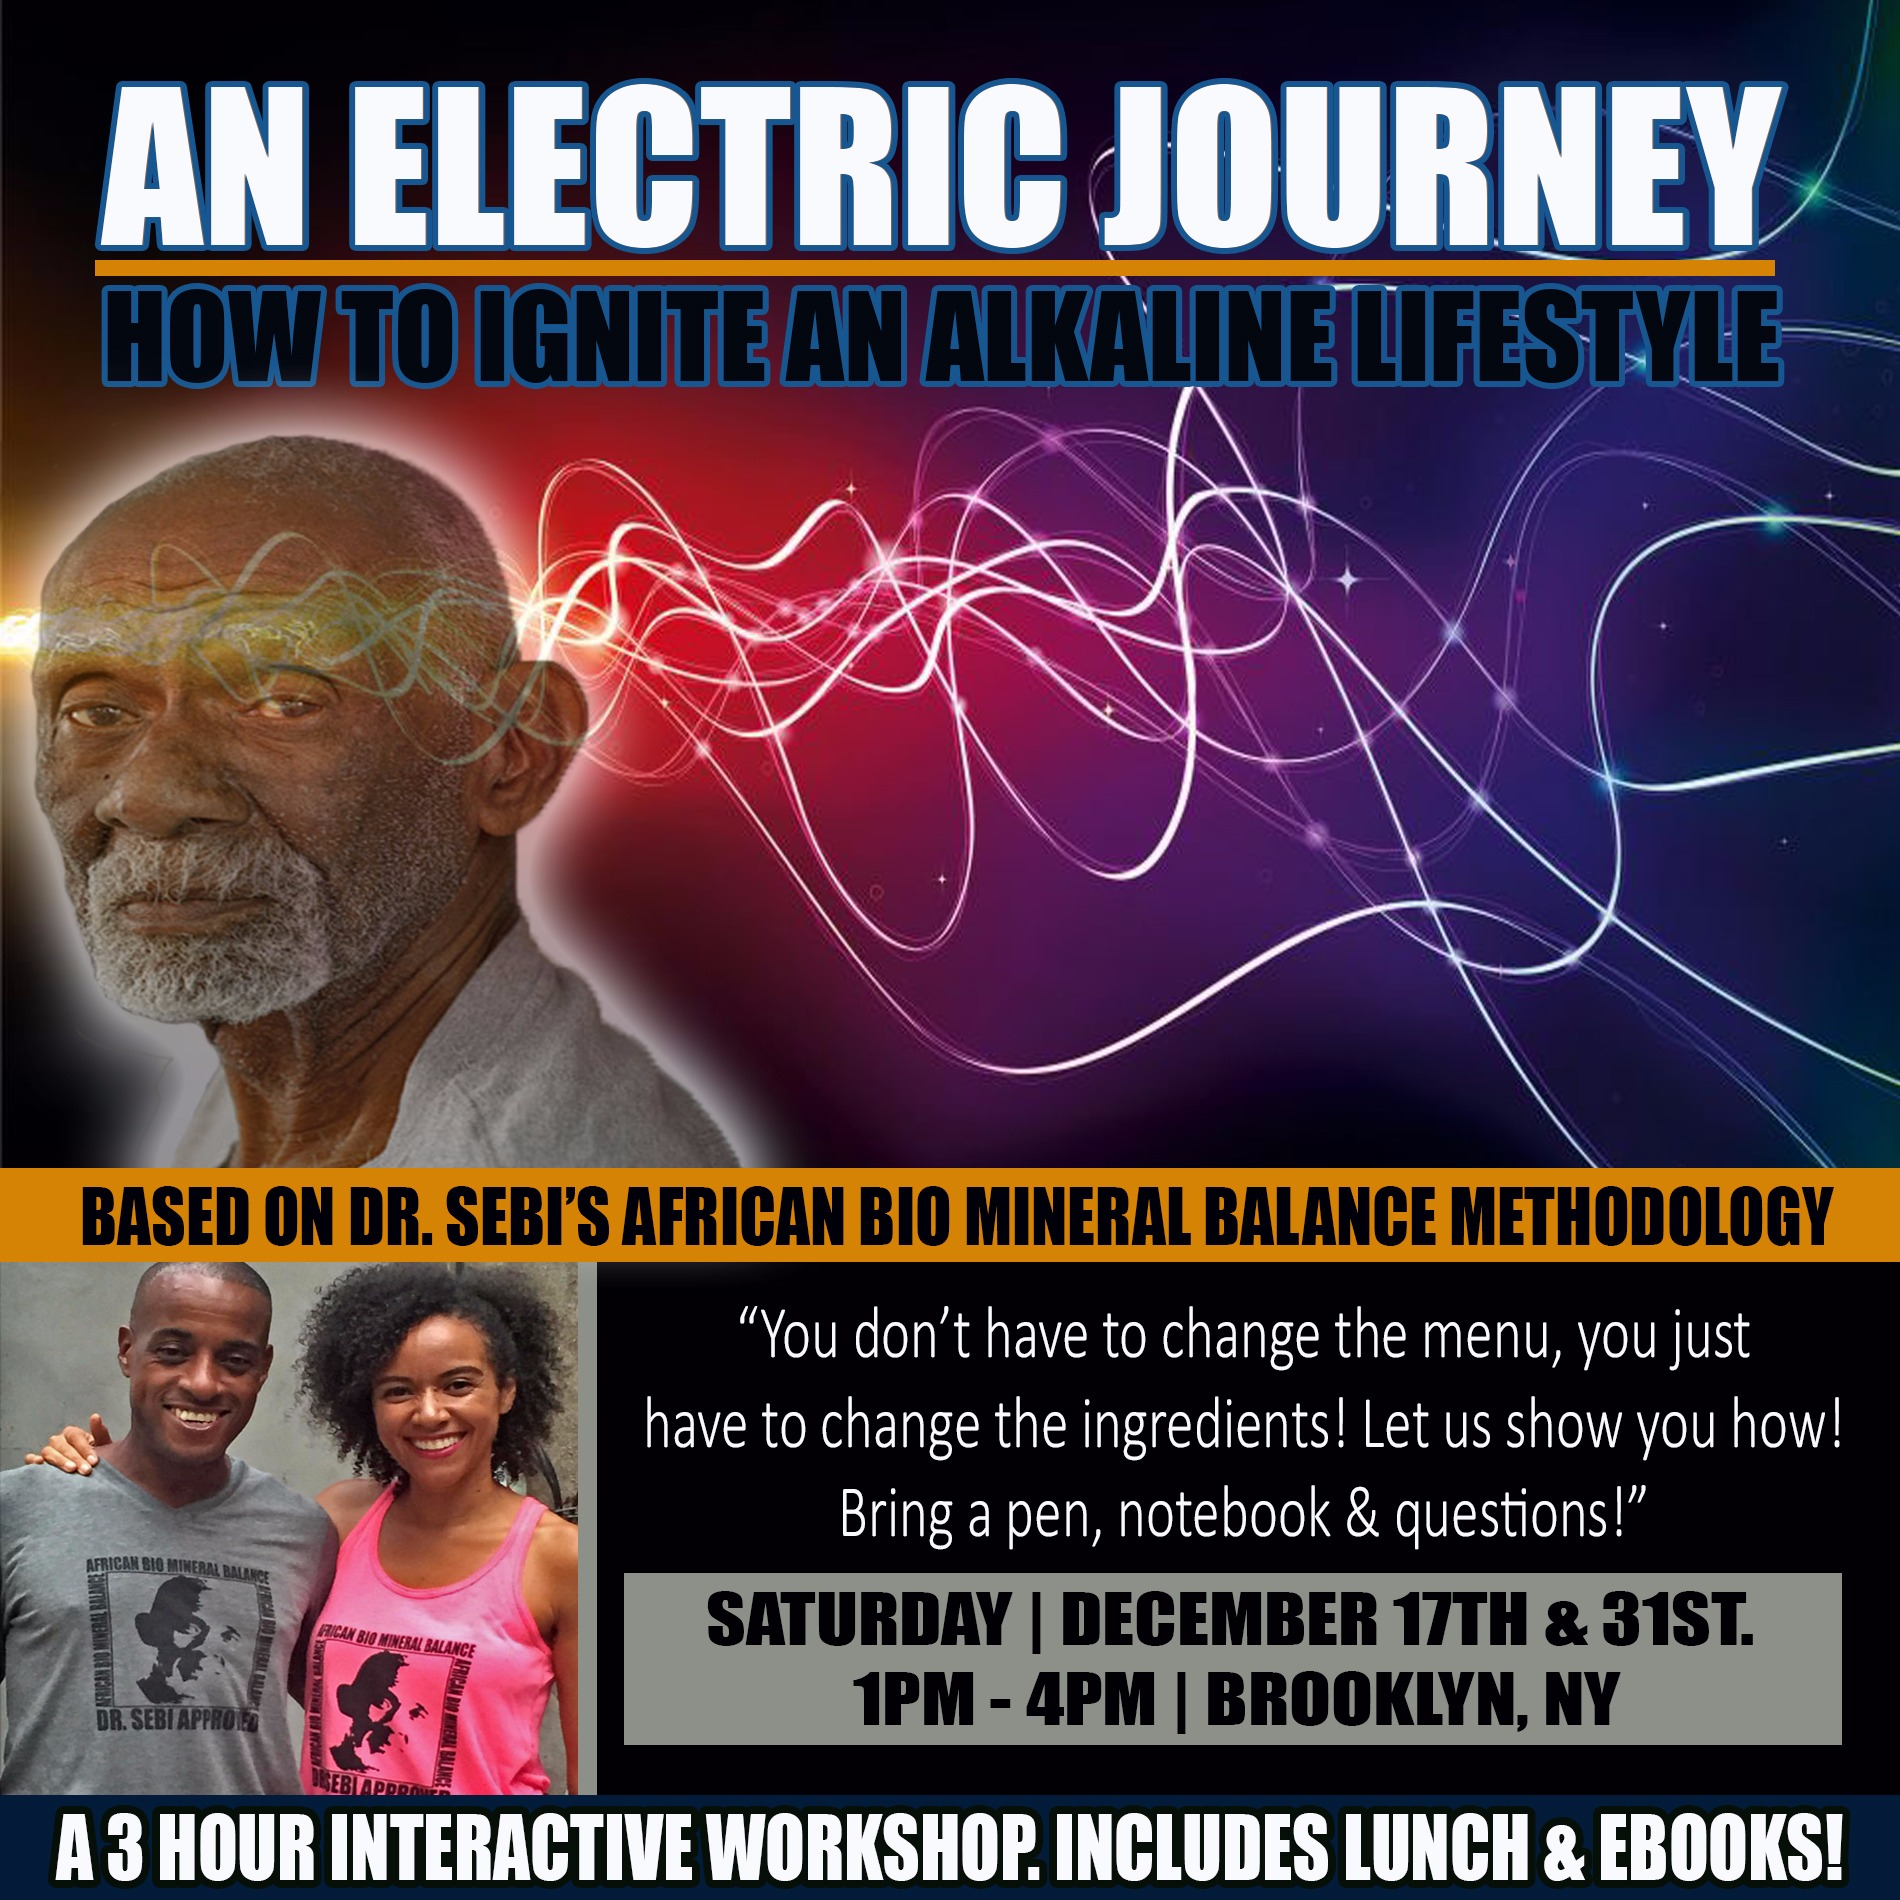 AN ELECTRIC JOURNEY WORKSHOP